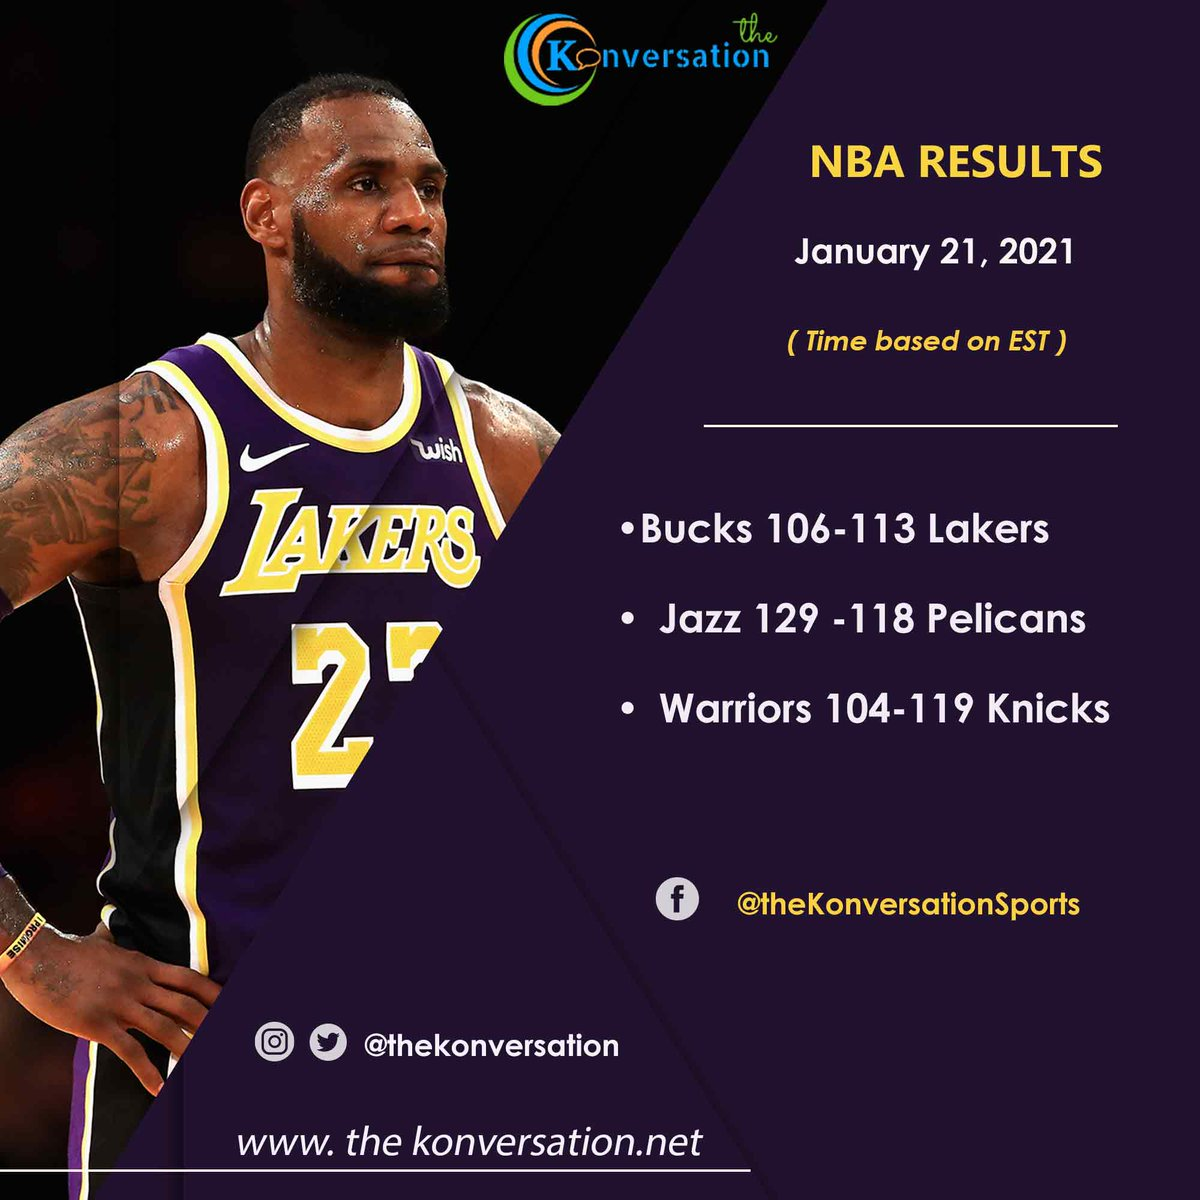 LeBron James led the way with 34 PTS, as the Lakers remain undefeated on the road with a win over Milwaukee! 👏👏👏  Lakers defeat Bucks, 113-106🔥🔥🔥  #LakeShow #Lakers #LALvsMIL #nbadfs #NBA